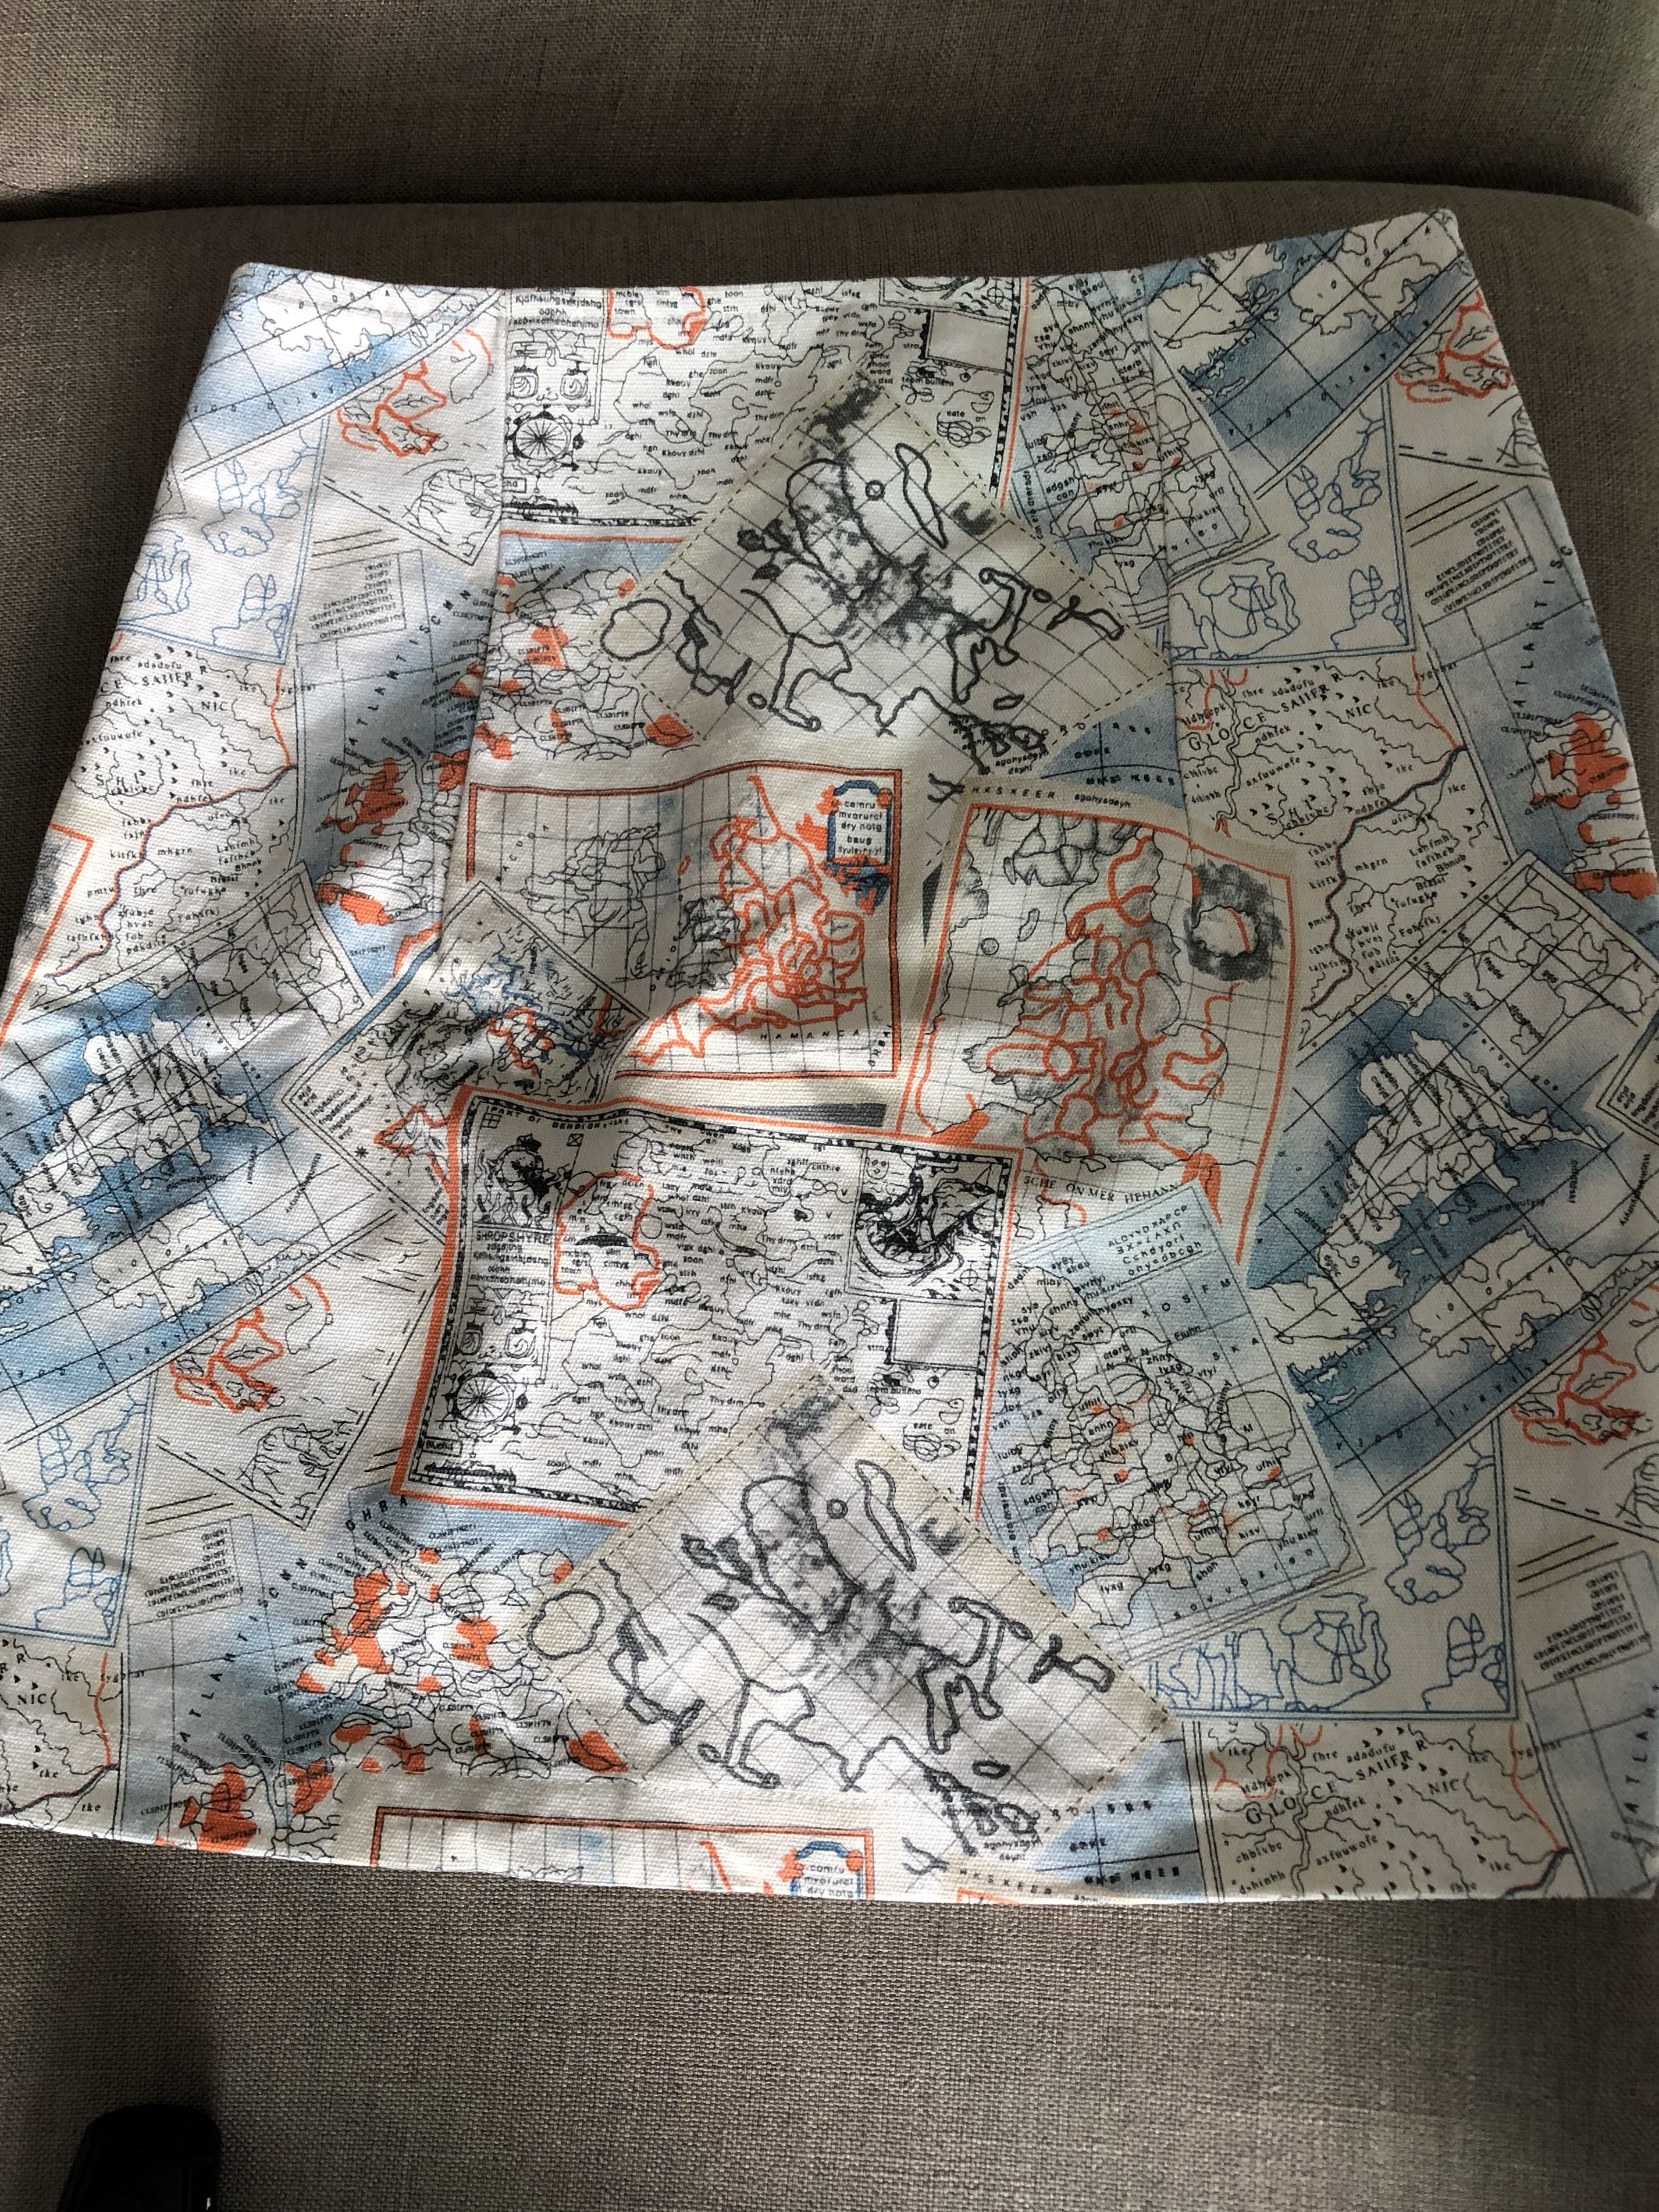 World Map Fitted Skirt Women S Fashion Clothes Dresses Skirts